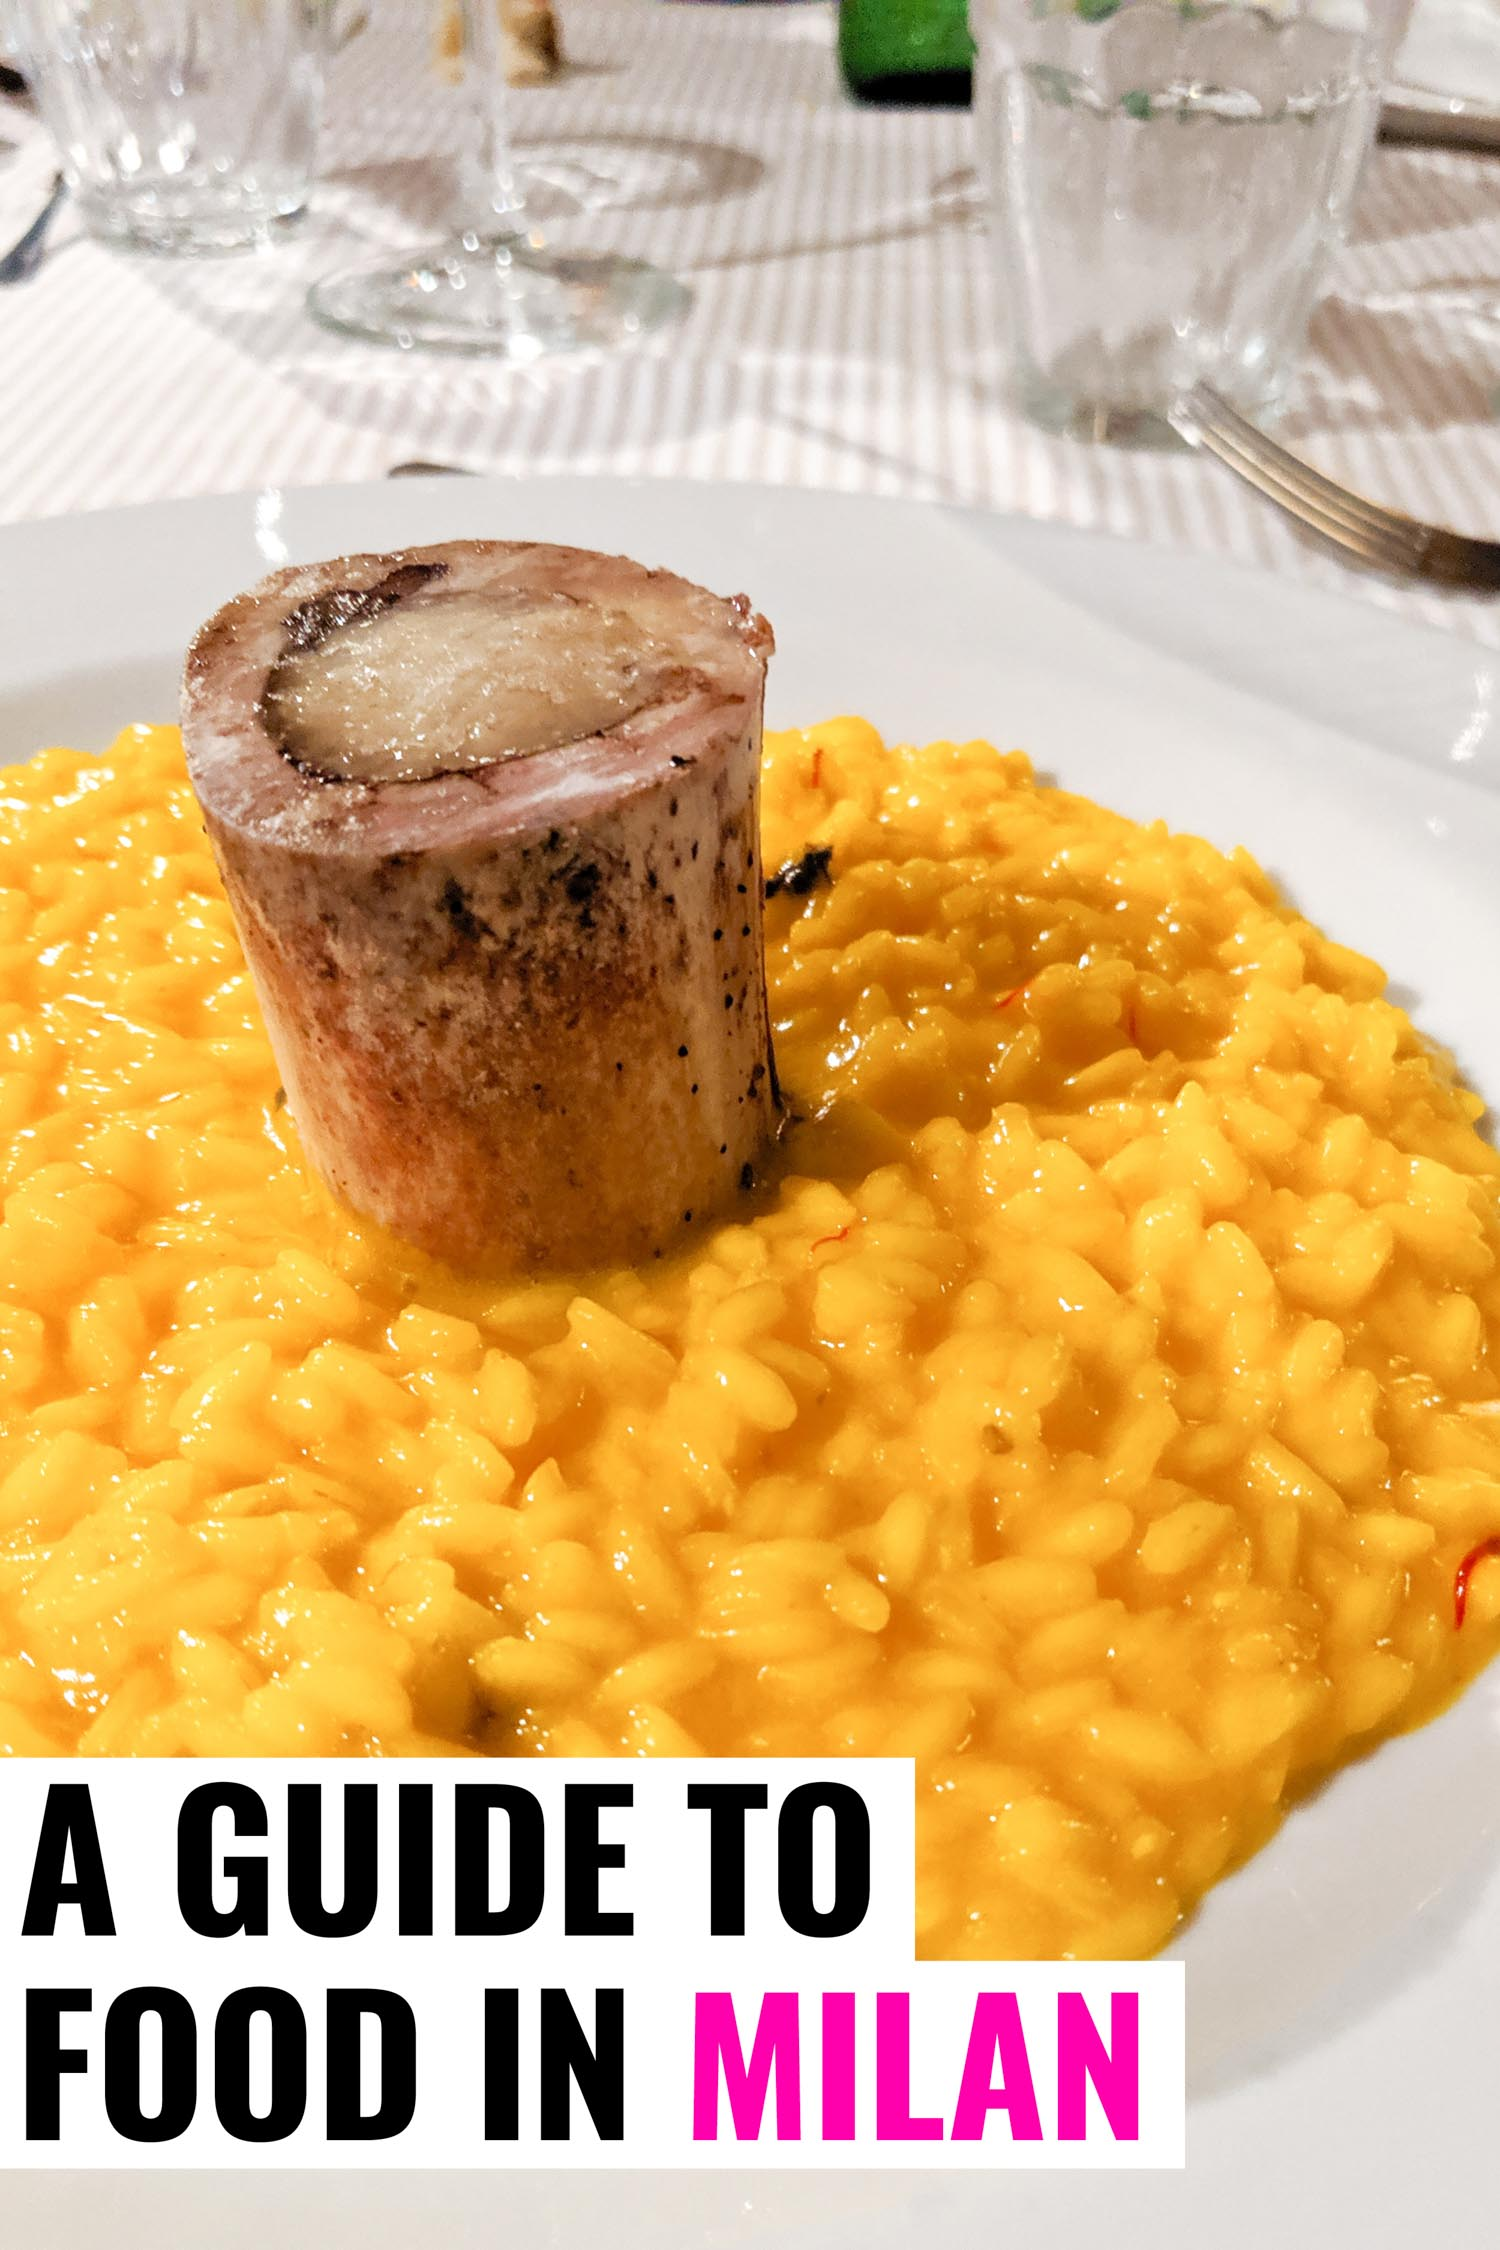 Risotto alla Milanese a traditional food in Milan